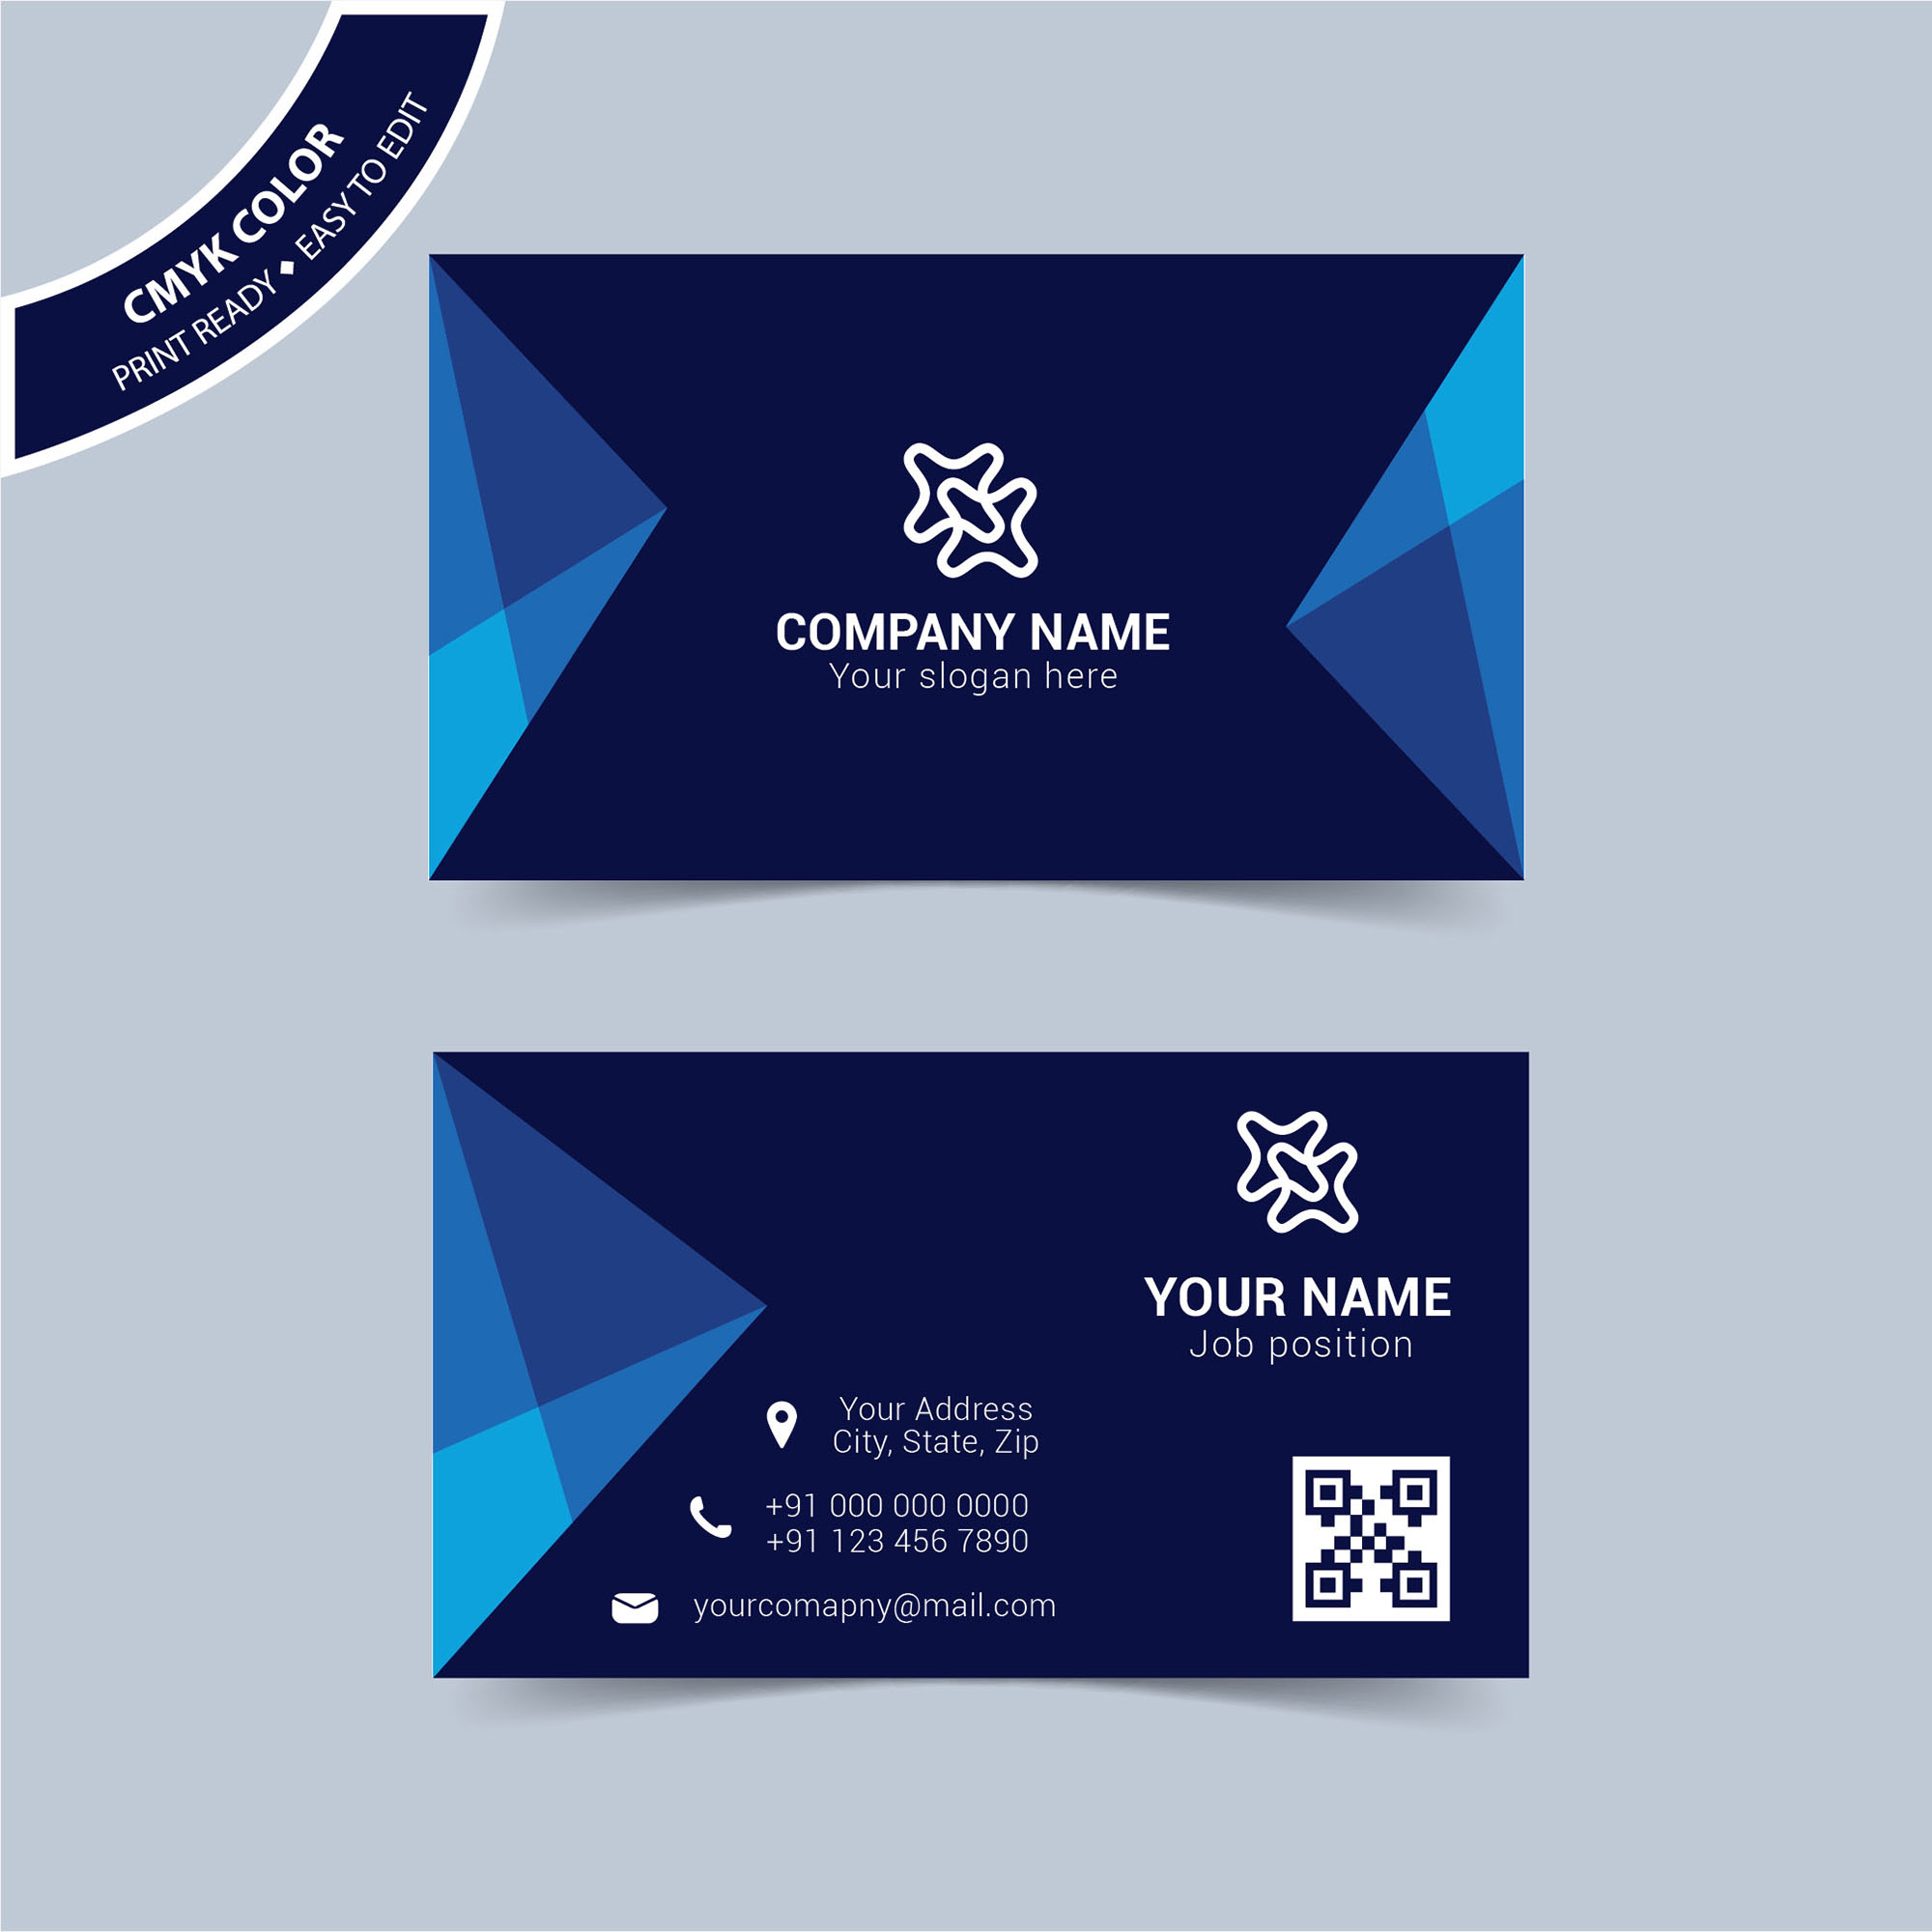 Modern blue business card template free download wisxi business card business cards business card design business card template design templates cheaphphosting Gallery